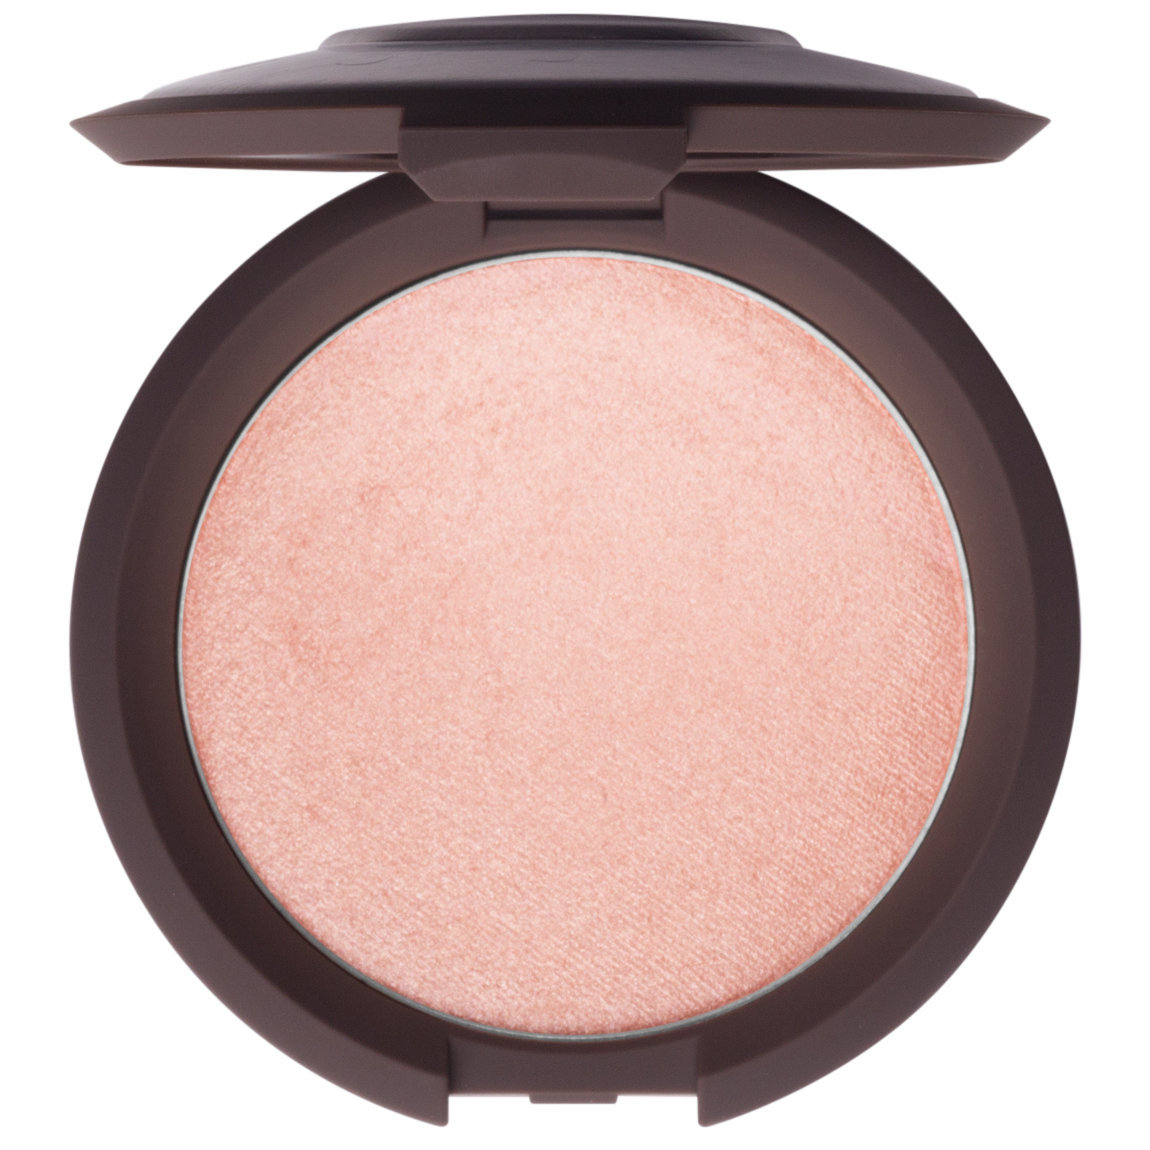 BECCA Cosmetics Shimmering Skin Perfector Pressed Highlighter Rose Gold alternative view 1 - product swatch.